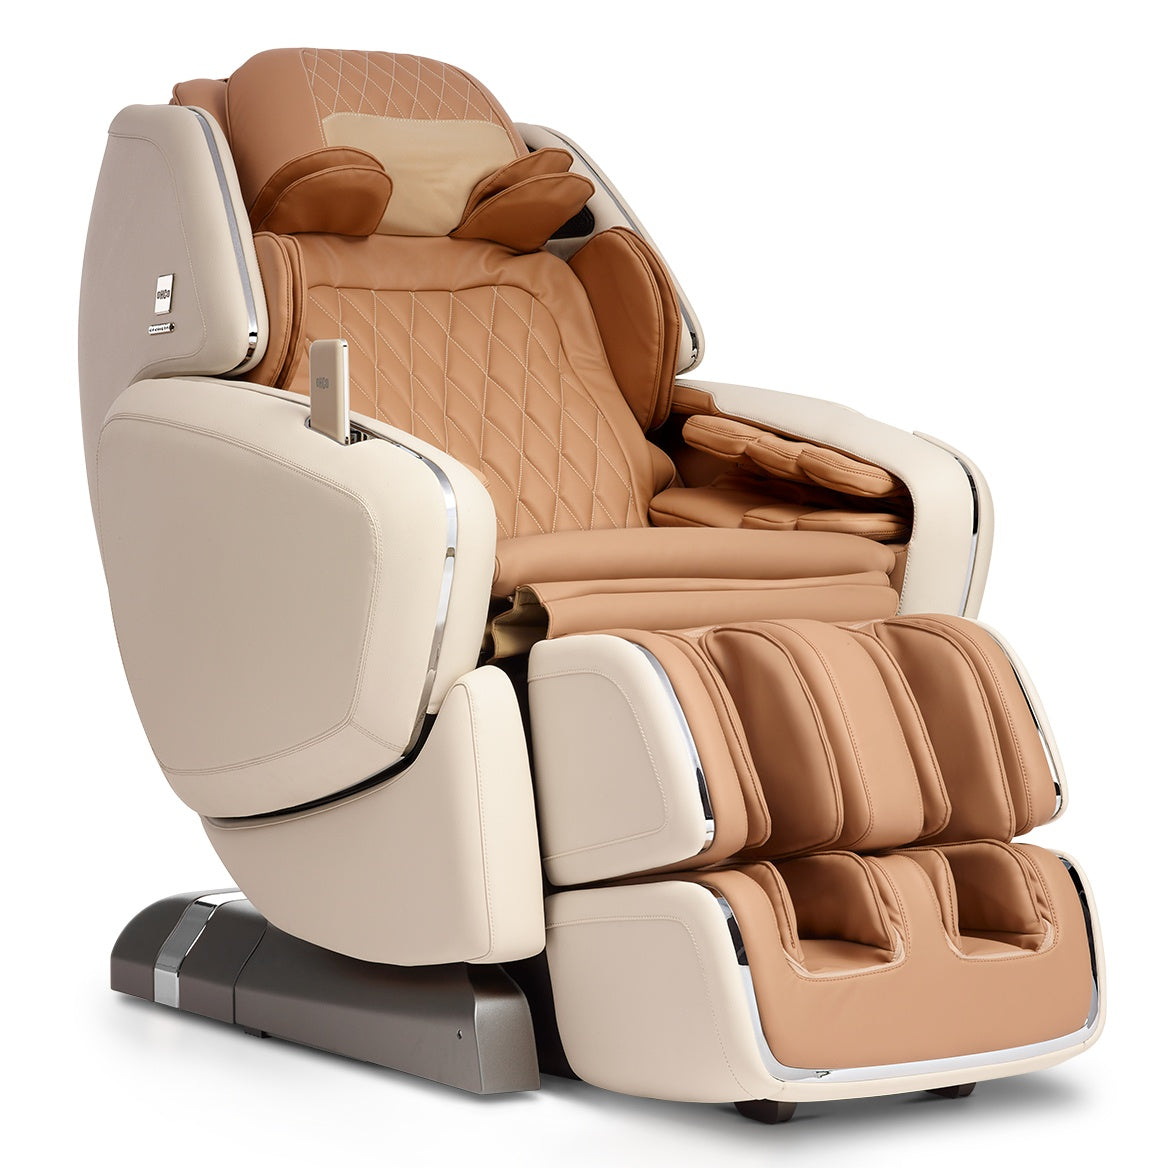 OHCO M.8 Massage Chair - Wish Rock Relaxation